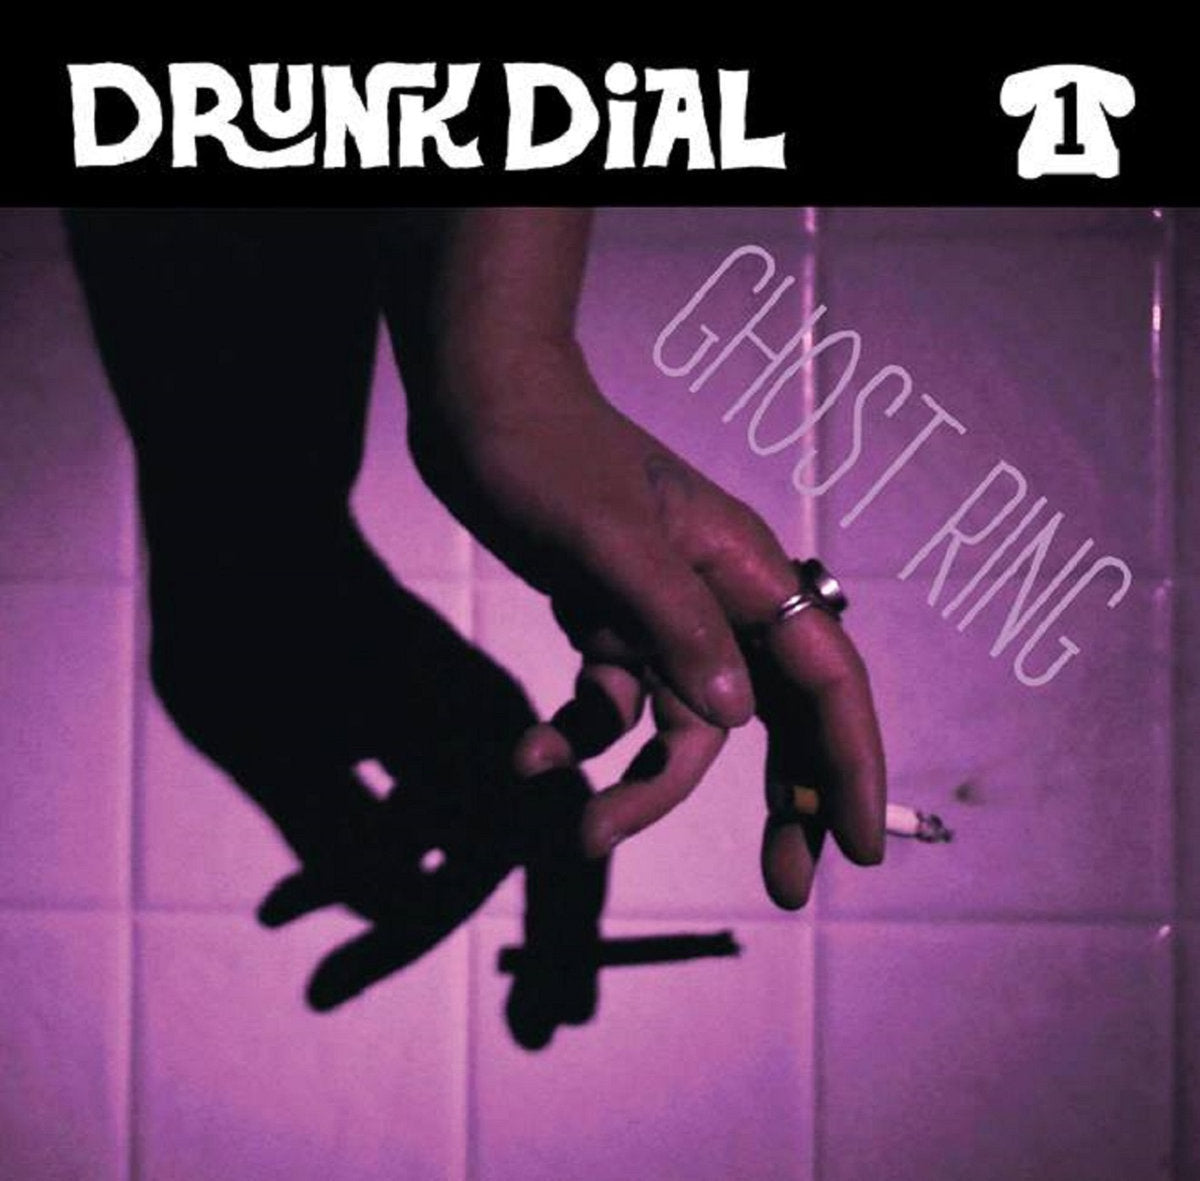 Drunk Dial #1 - Ghost Ring (color vinyl) - New 7""